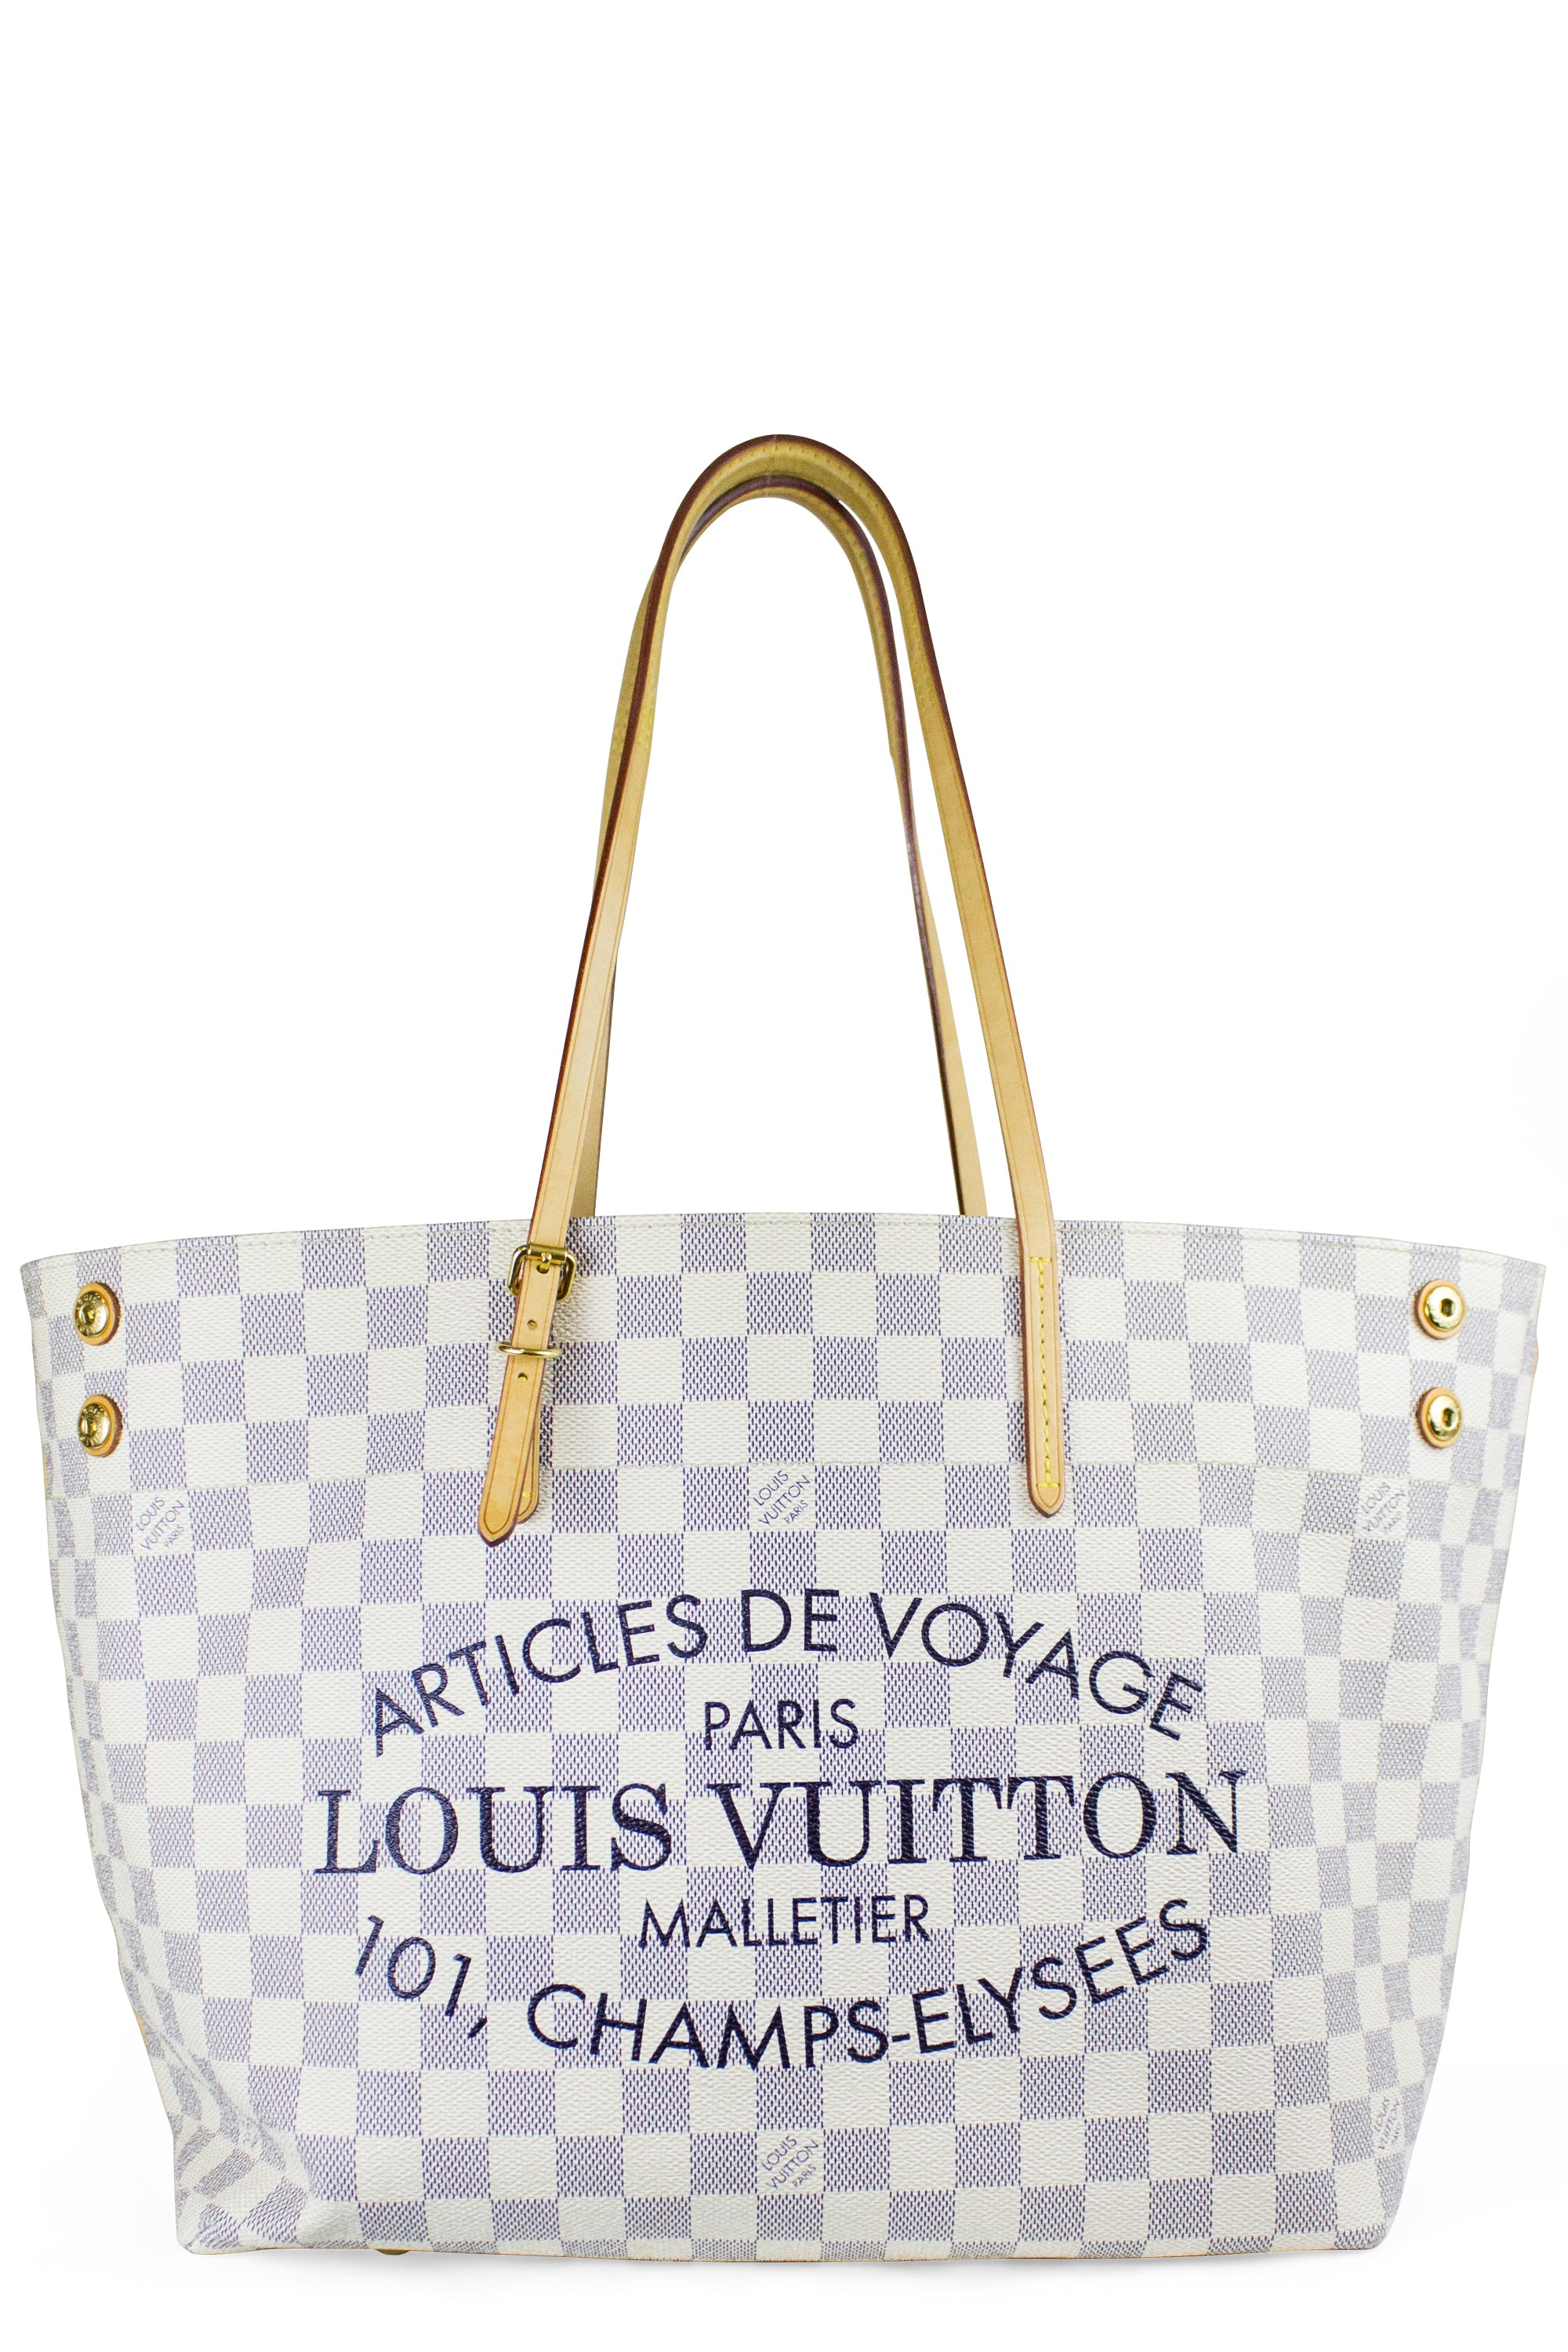 LOUIS VUITTON Tote Limited Edition